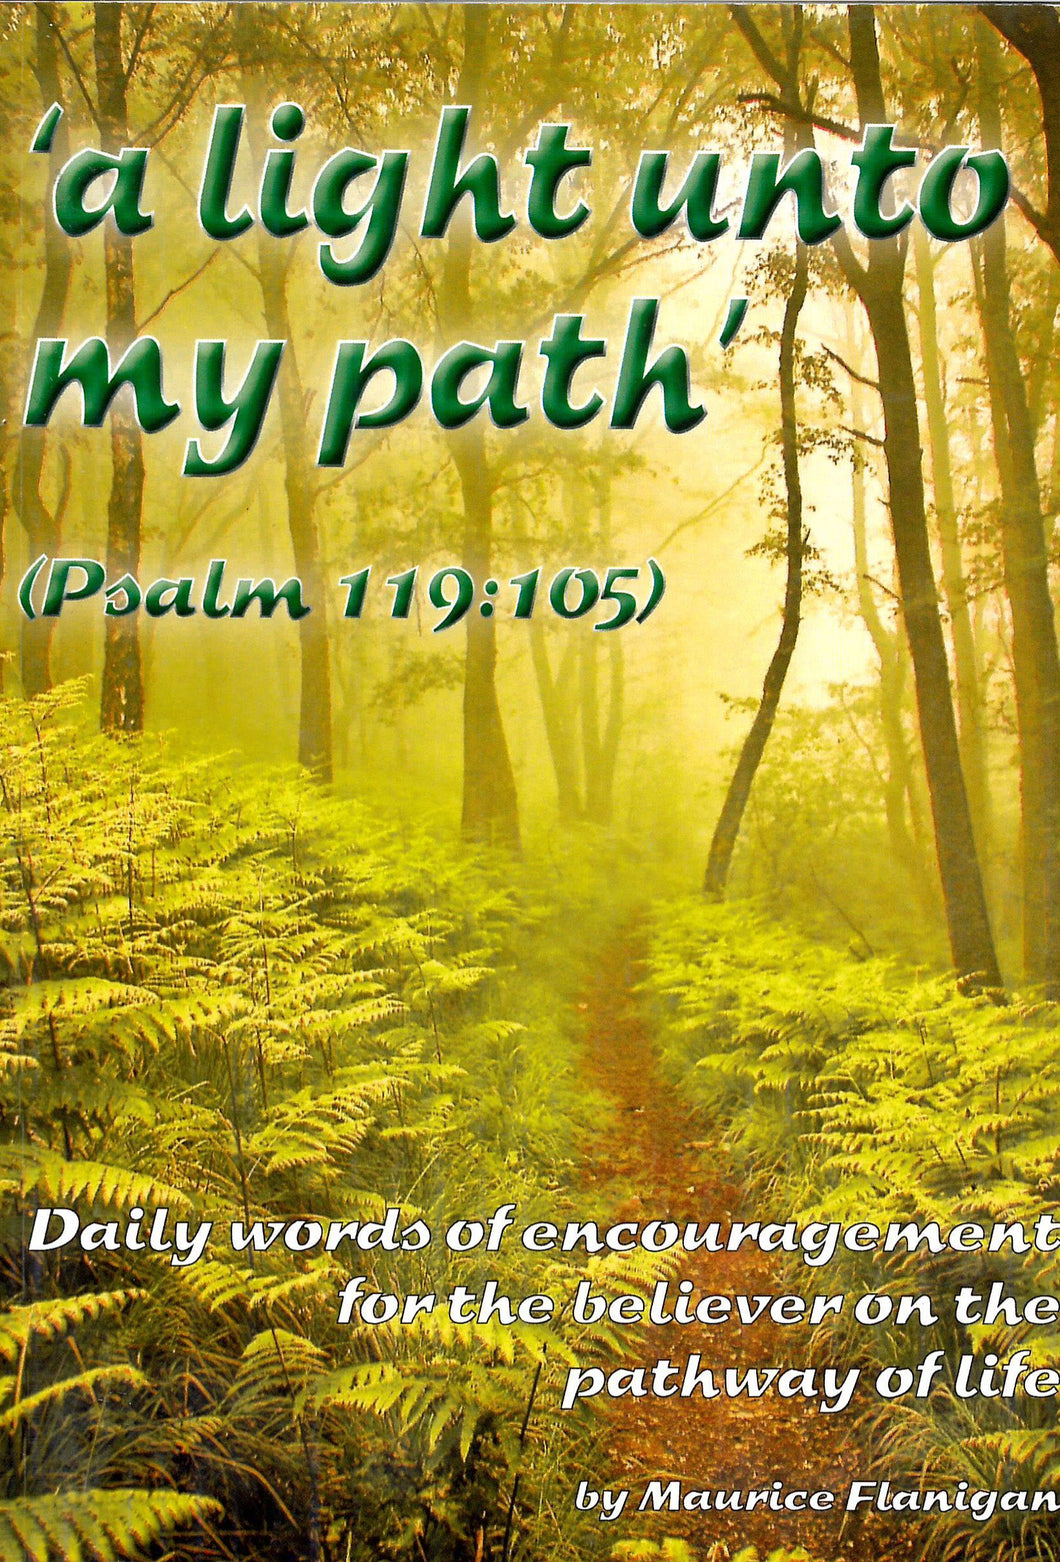 'A Light Unto My Path': Daily Words of Encouragement for the Believer on the Pathway of Life